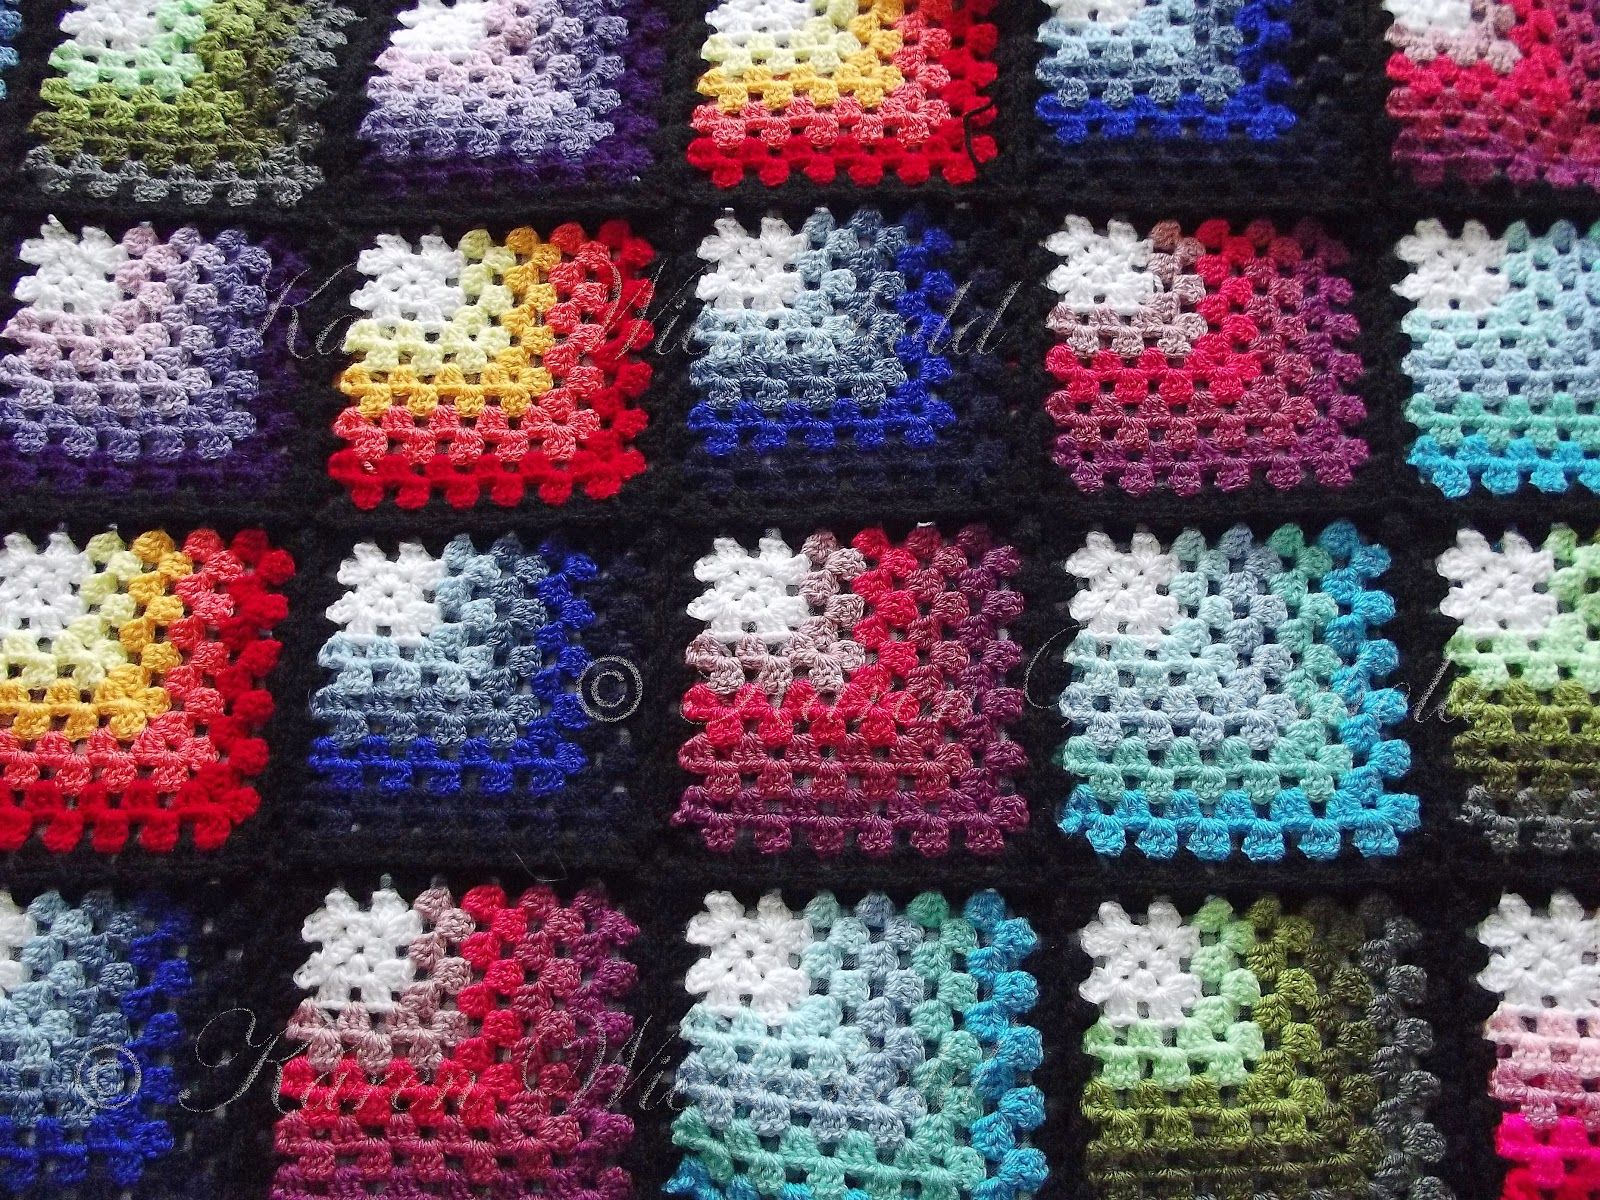 Crochet Granny Square Rug Patterns : Crochet Granny Square Afghan Patterns www.galleryhip.com ...